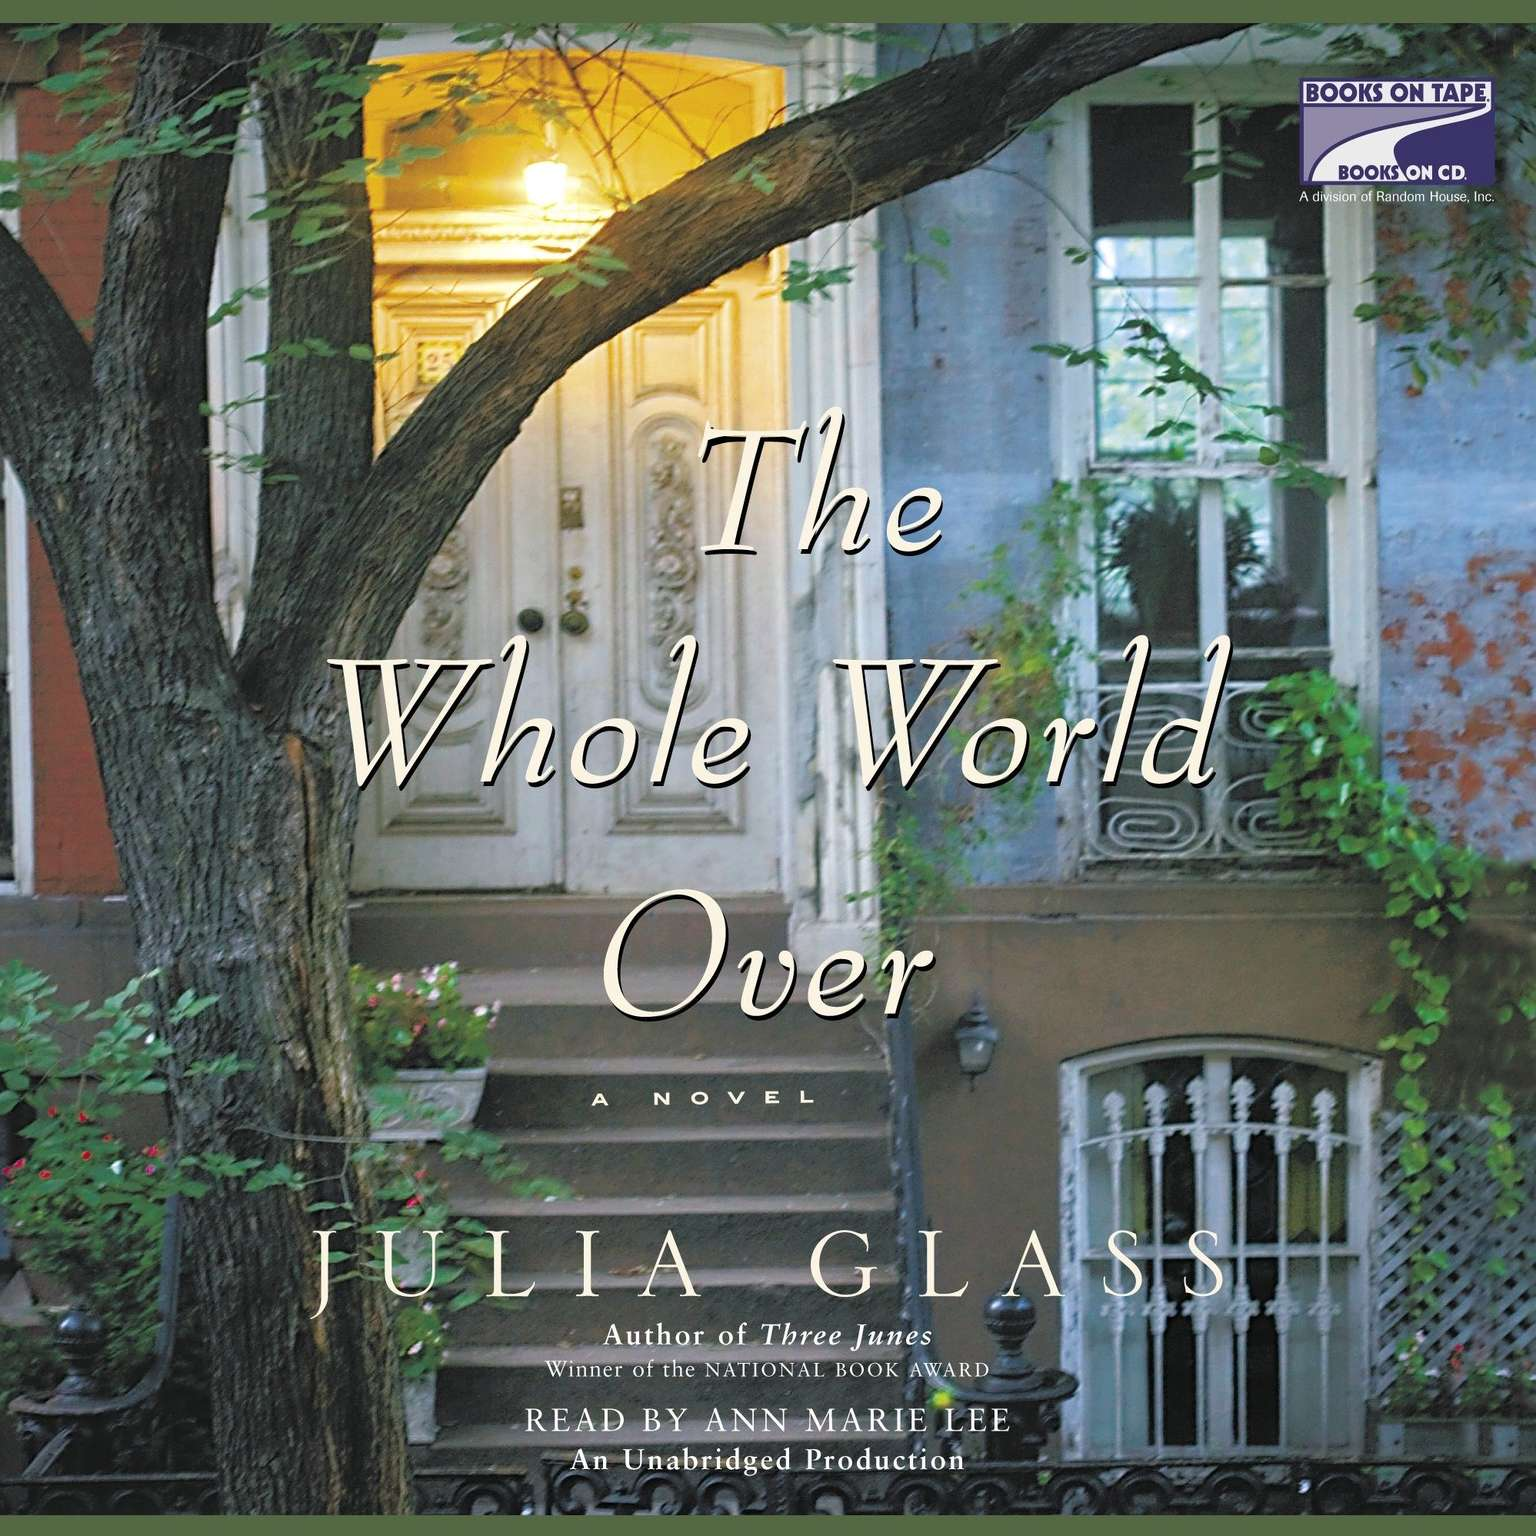 Printable The Whole World Over Audiobook Cover Art